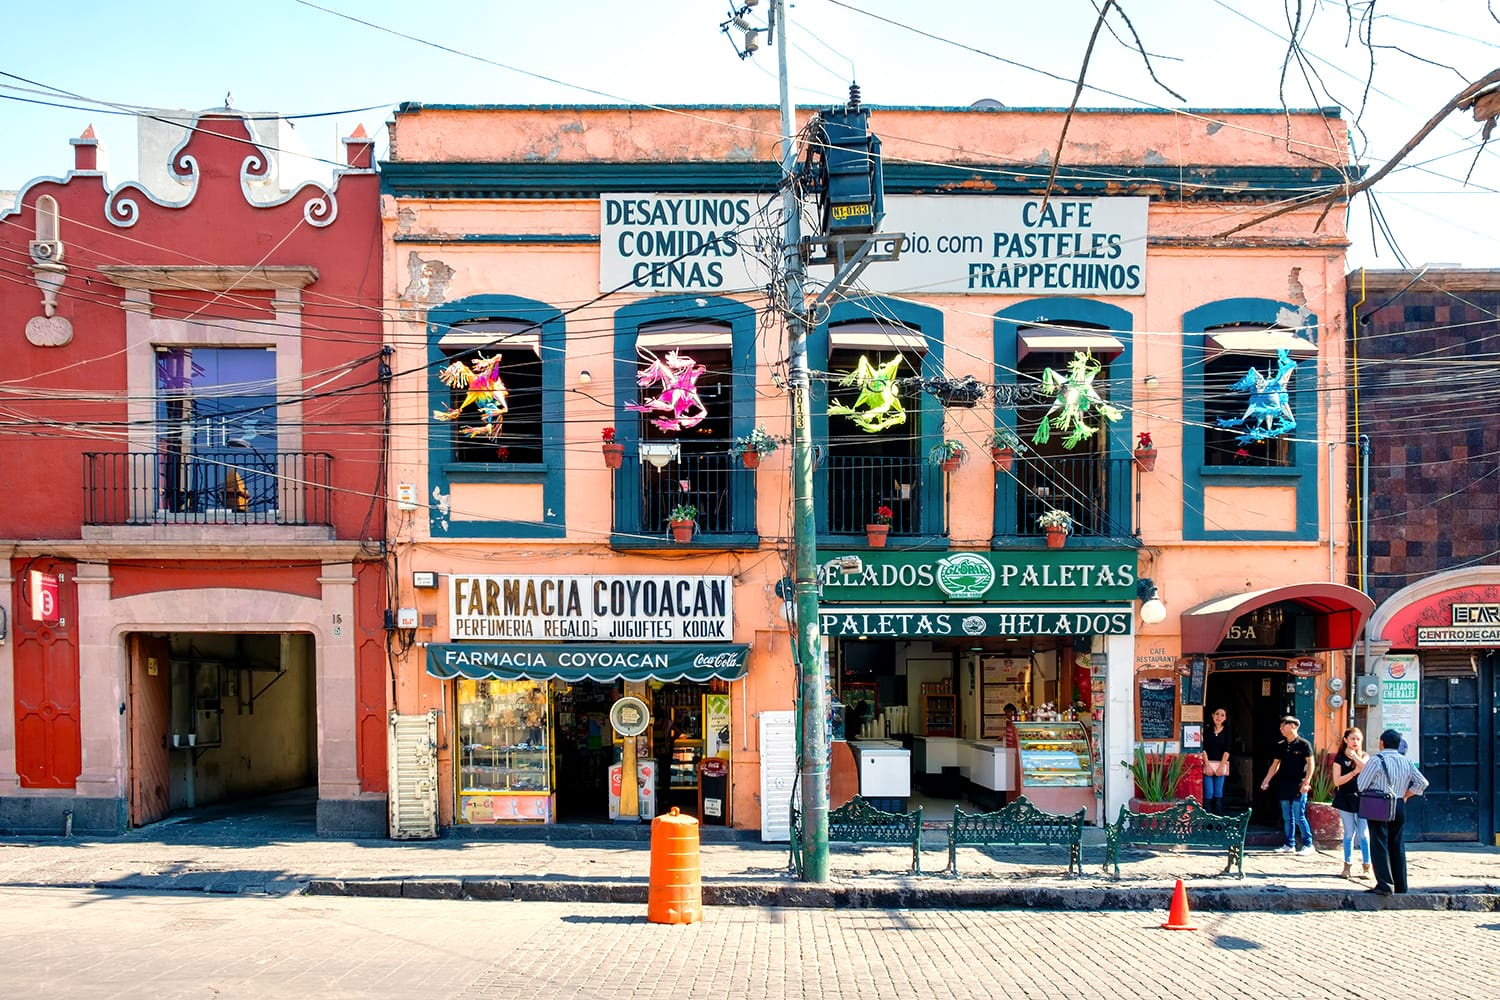 Local businesses at a colorful colonial building in Coyoacan, a historic neighborhhod in Mexico City